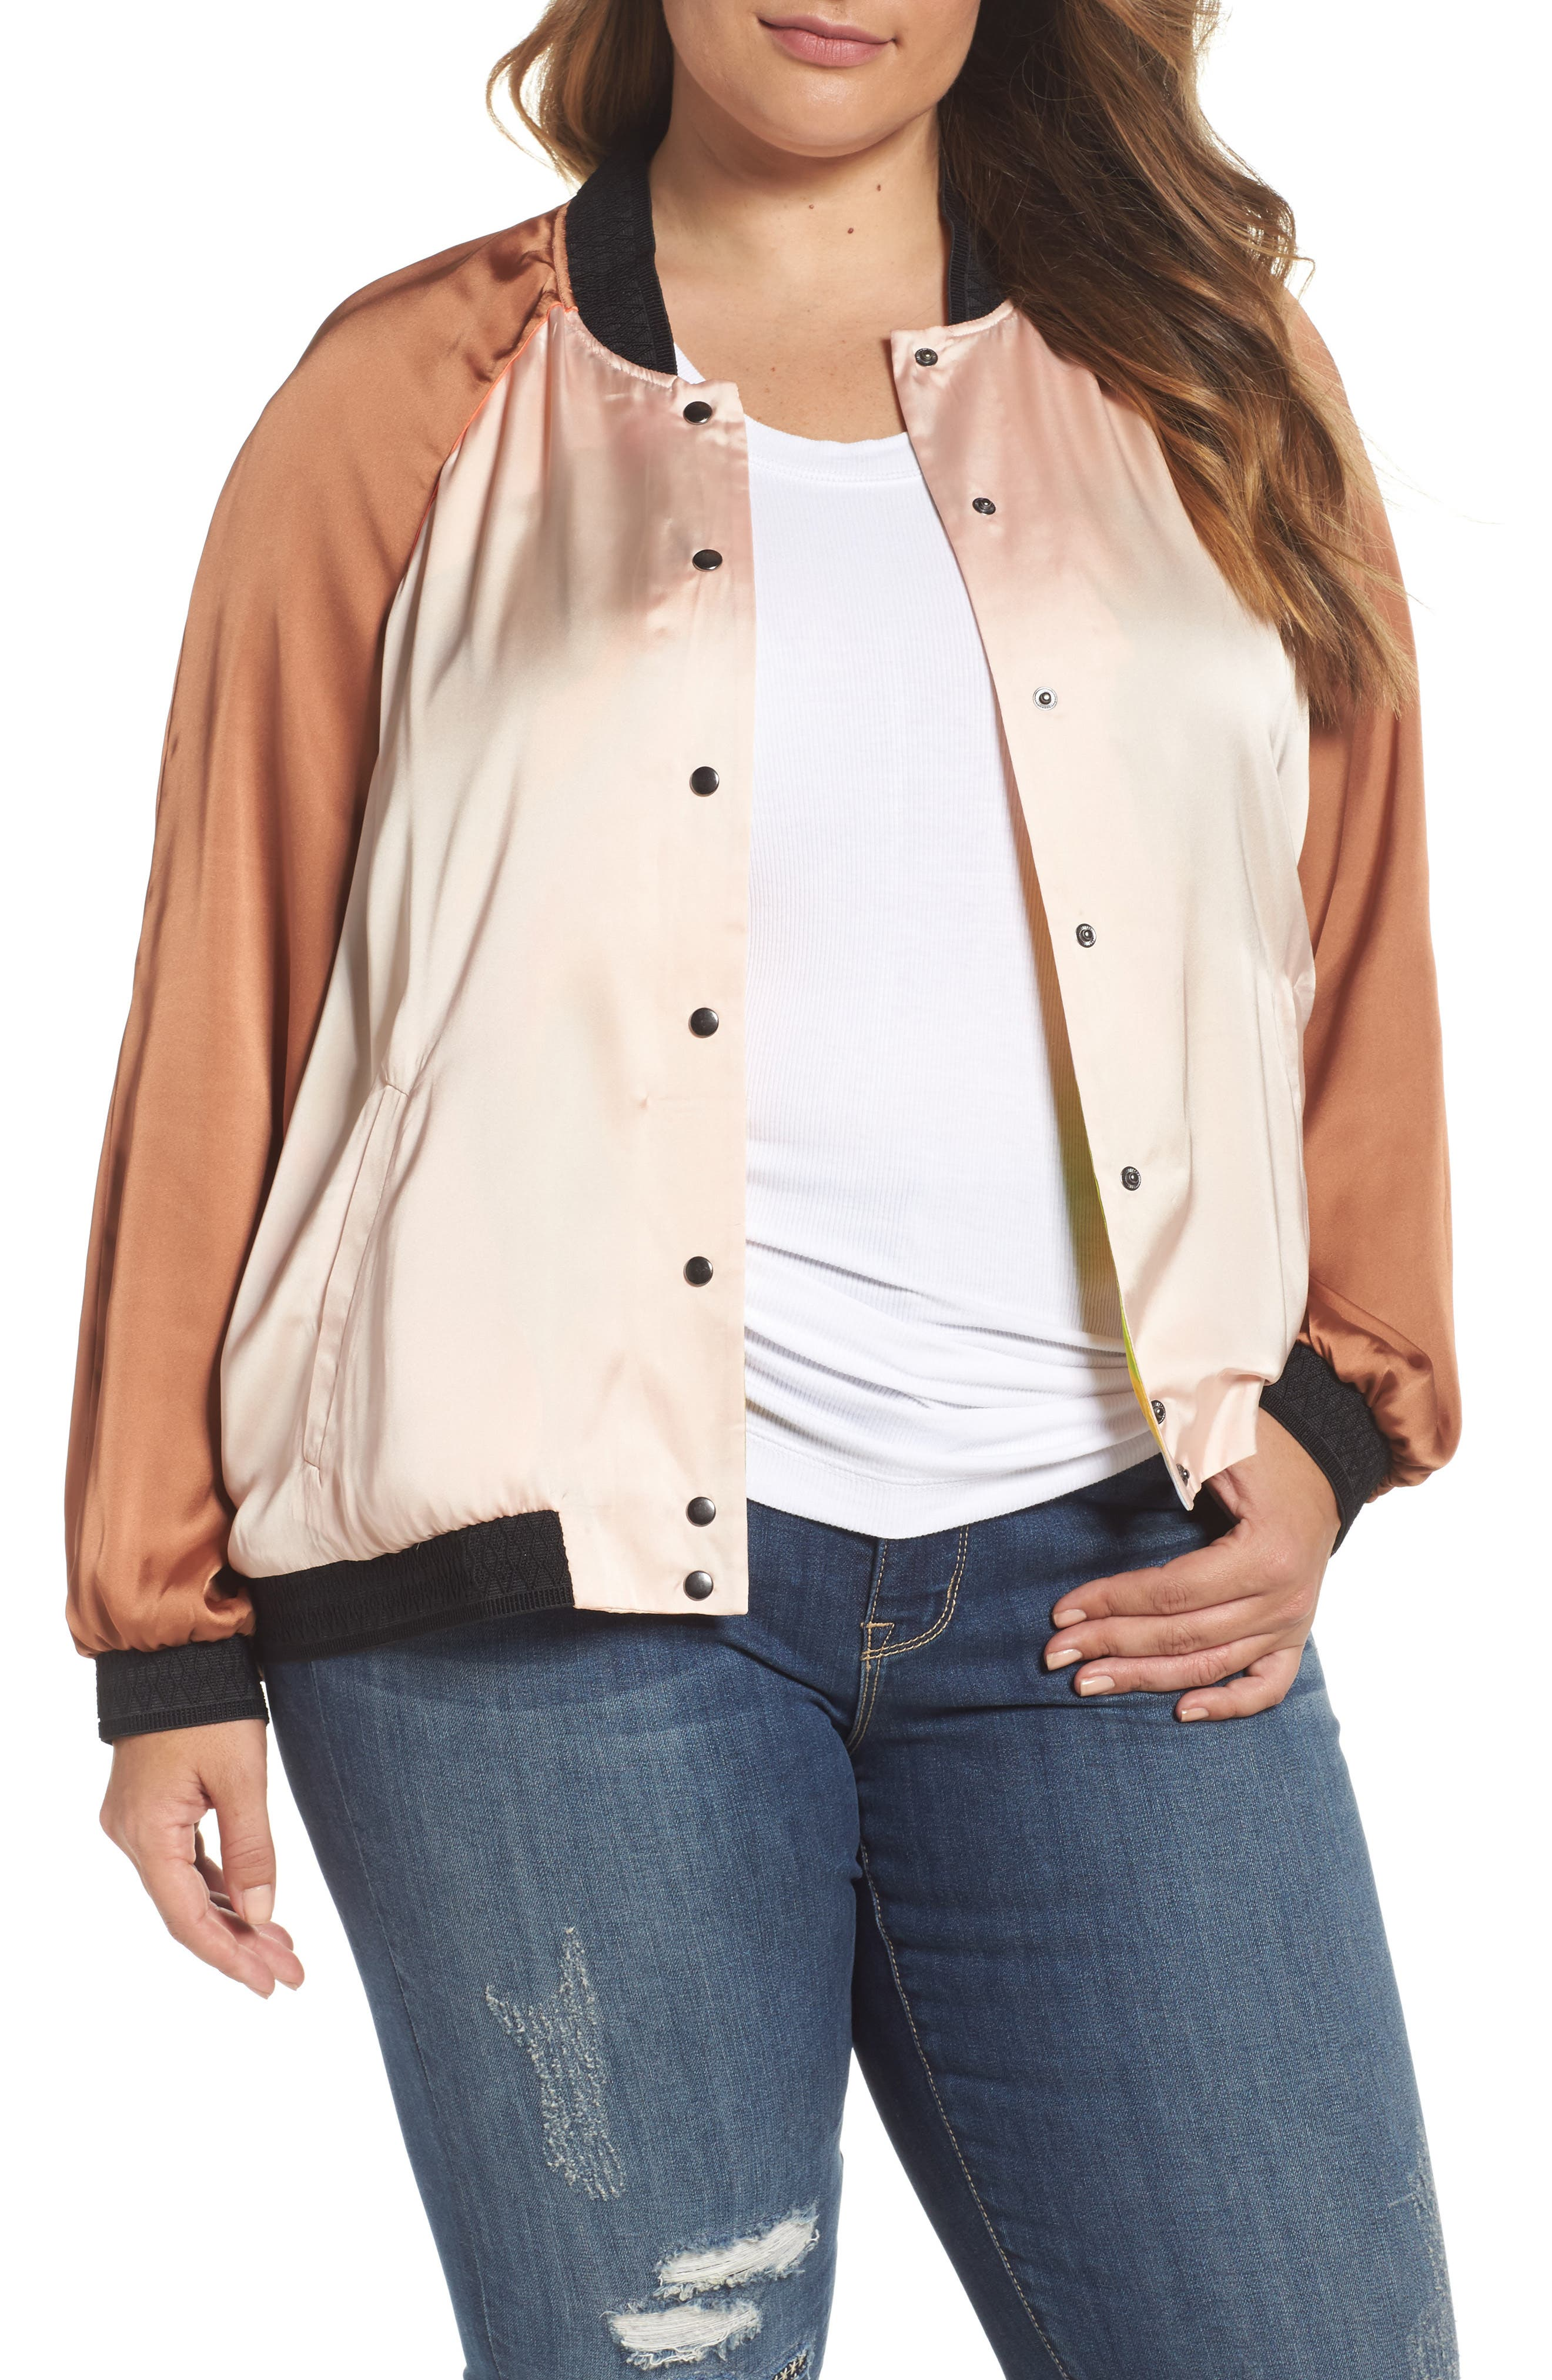 Melissa McCarthy Seven7 Reversible Embroidered Bomber Jacket (Plus Size)